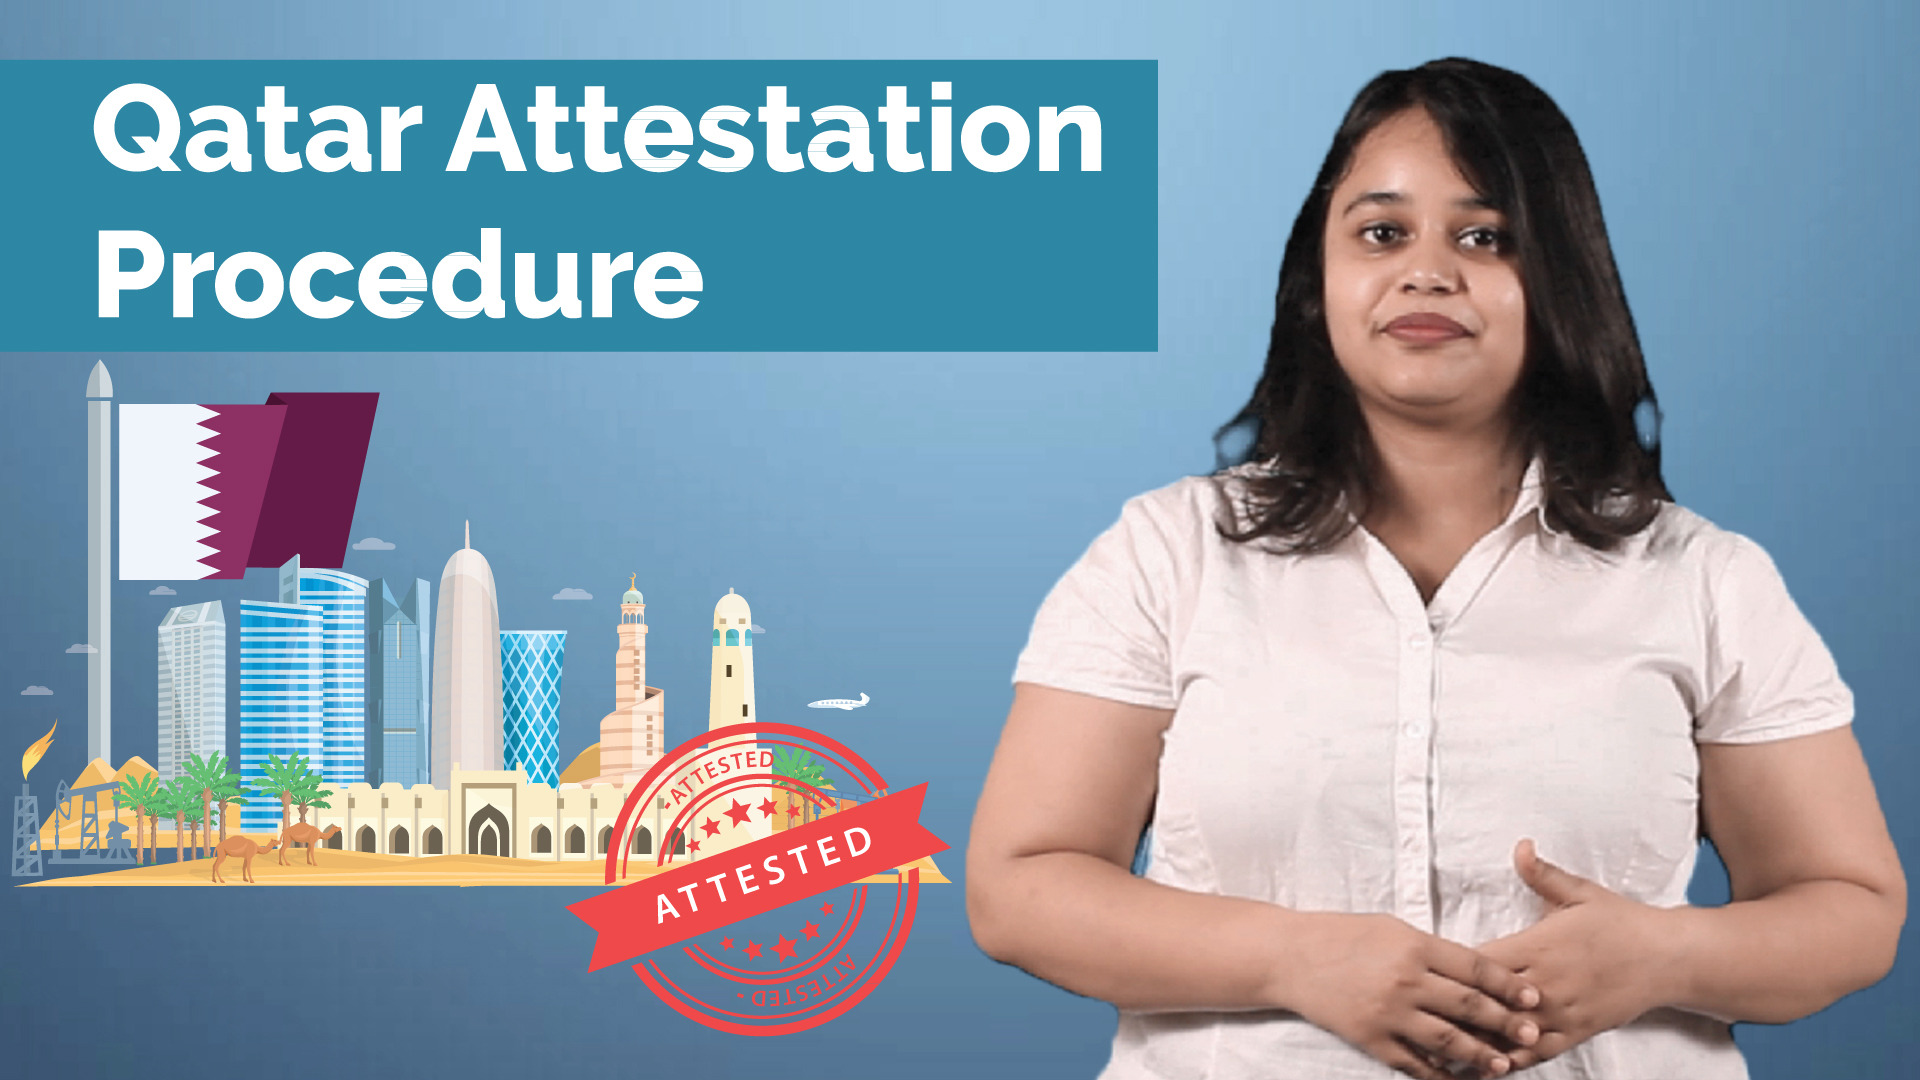 Qatar Attestation Procedure For Indians